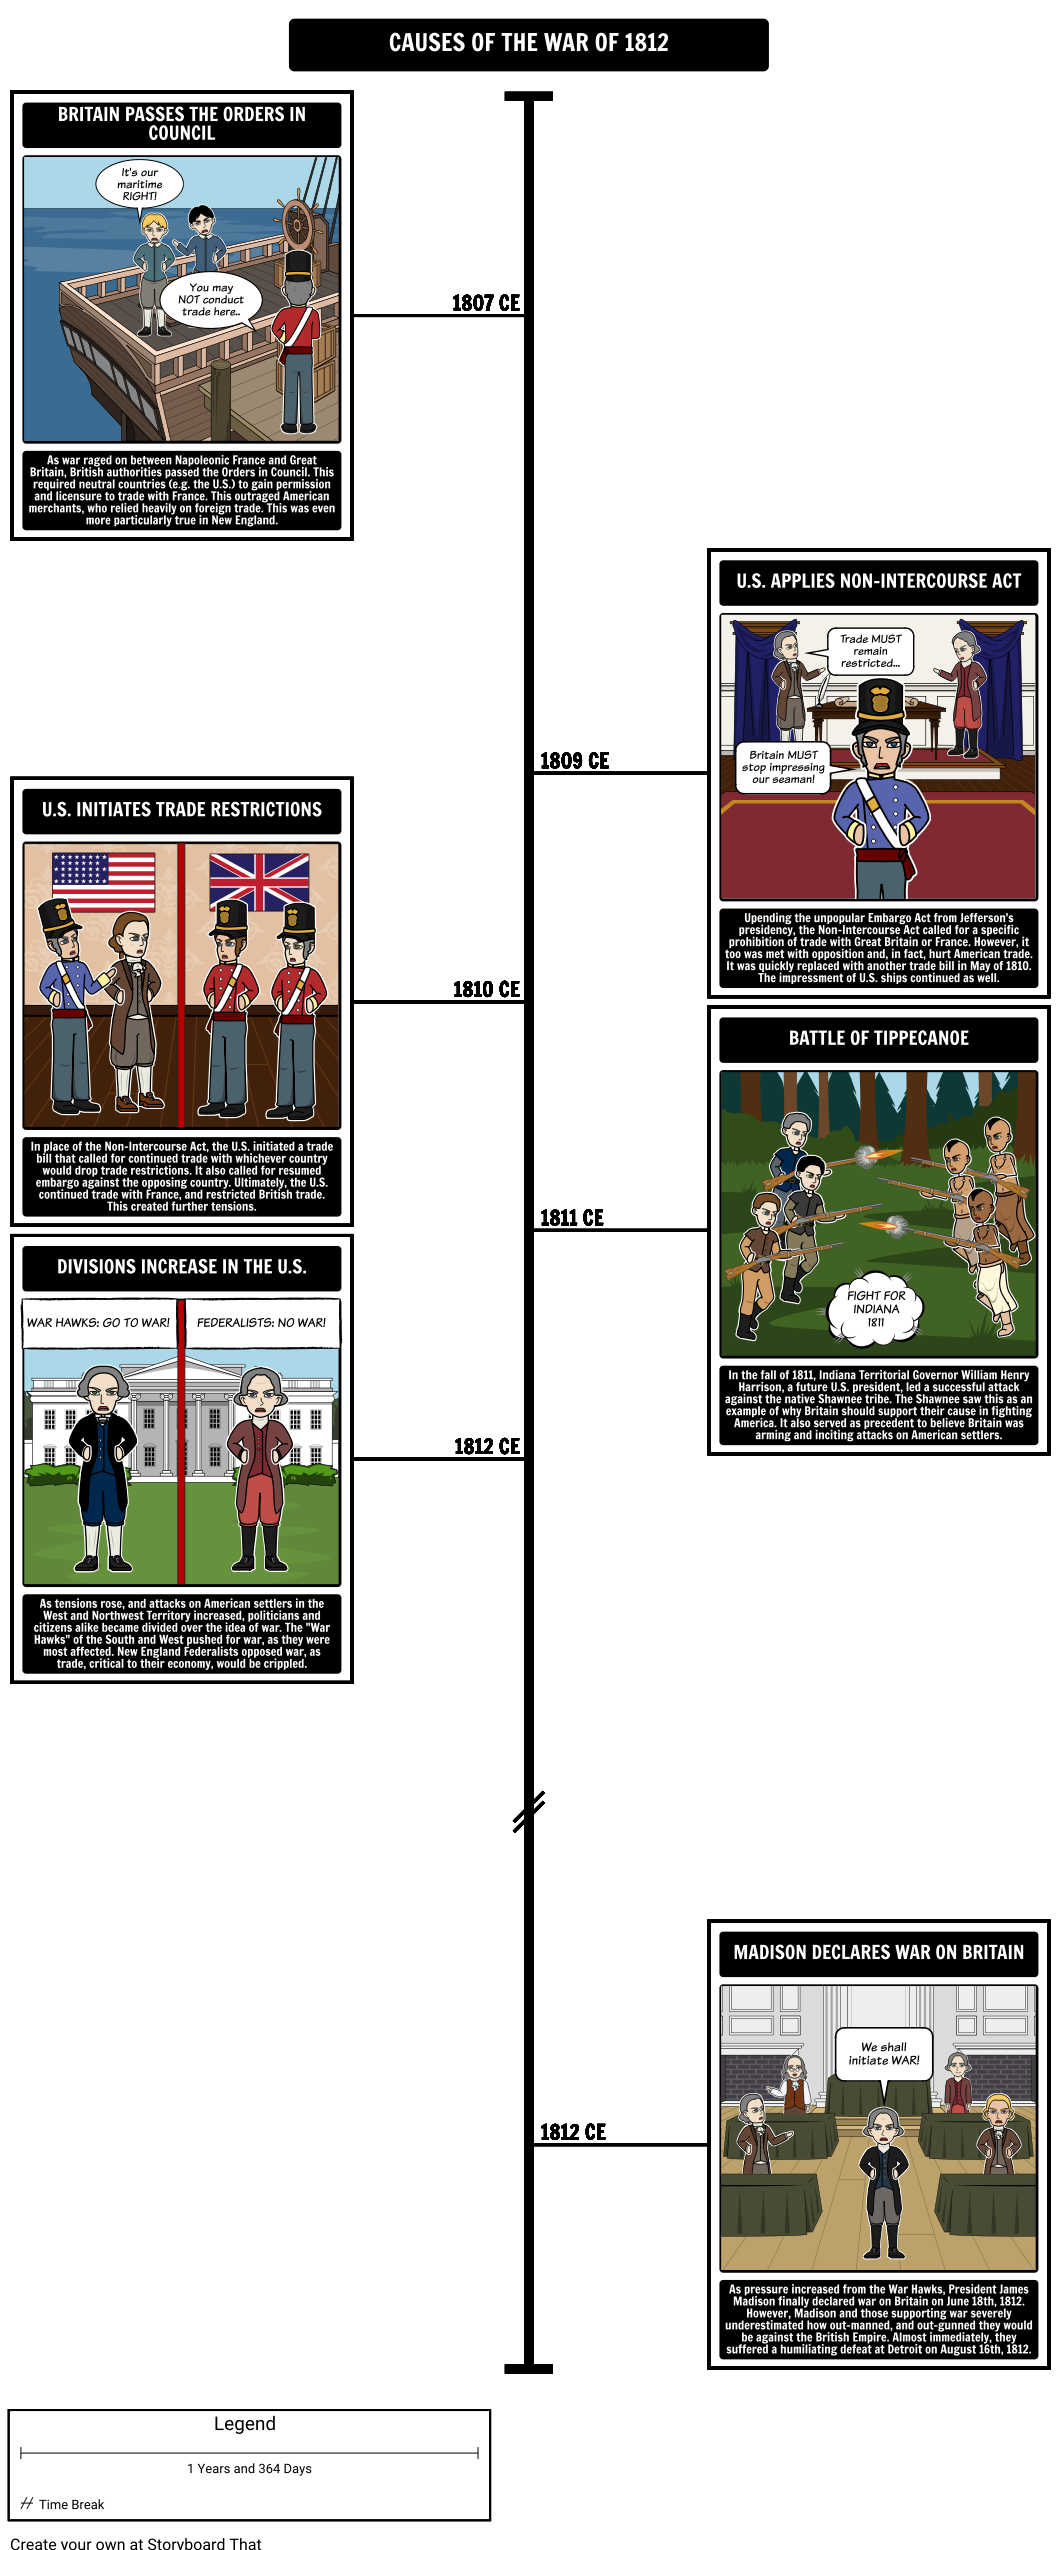 Causes of the War of 1812 Timeline